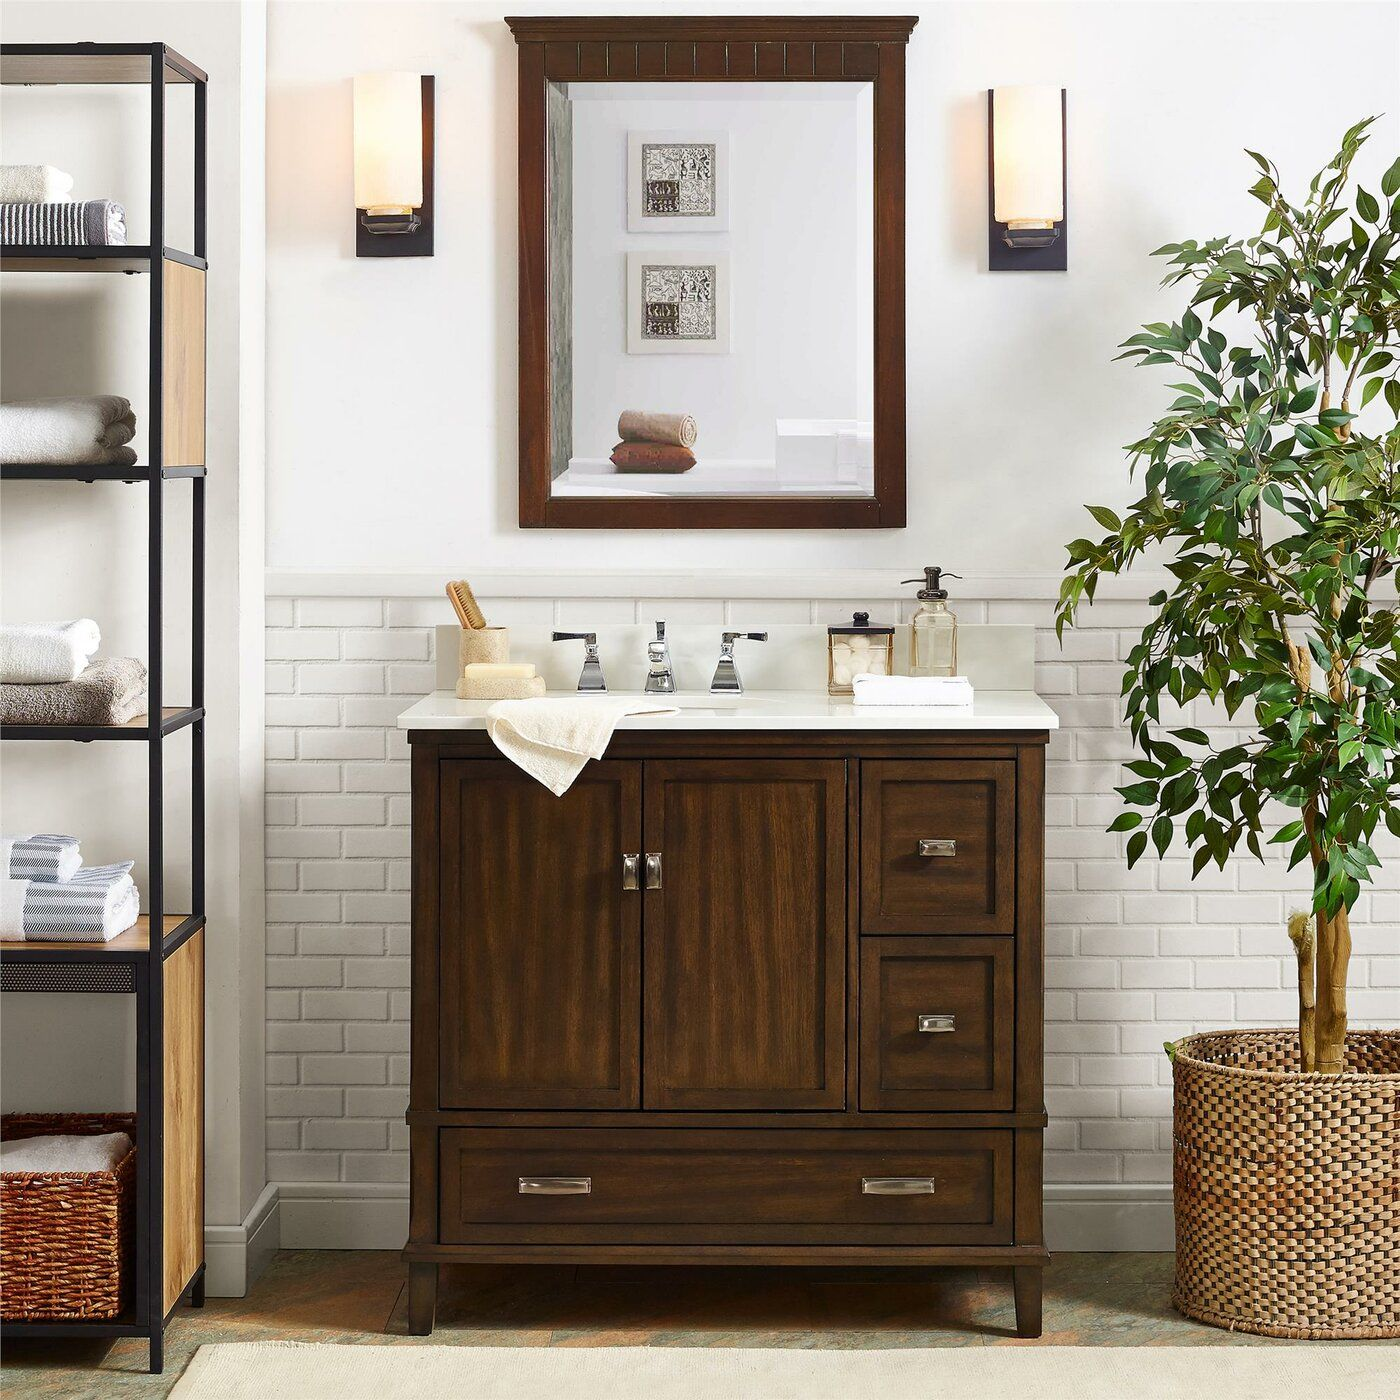 Ka 36 Single Bathroom Vanity Set 36 Inch Bathroom Vanity